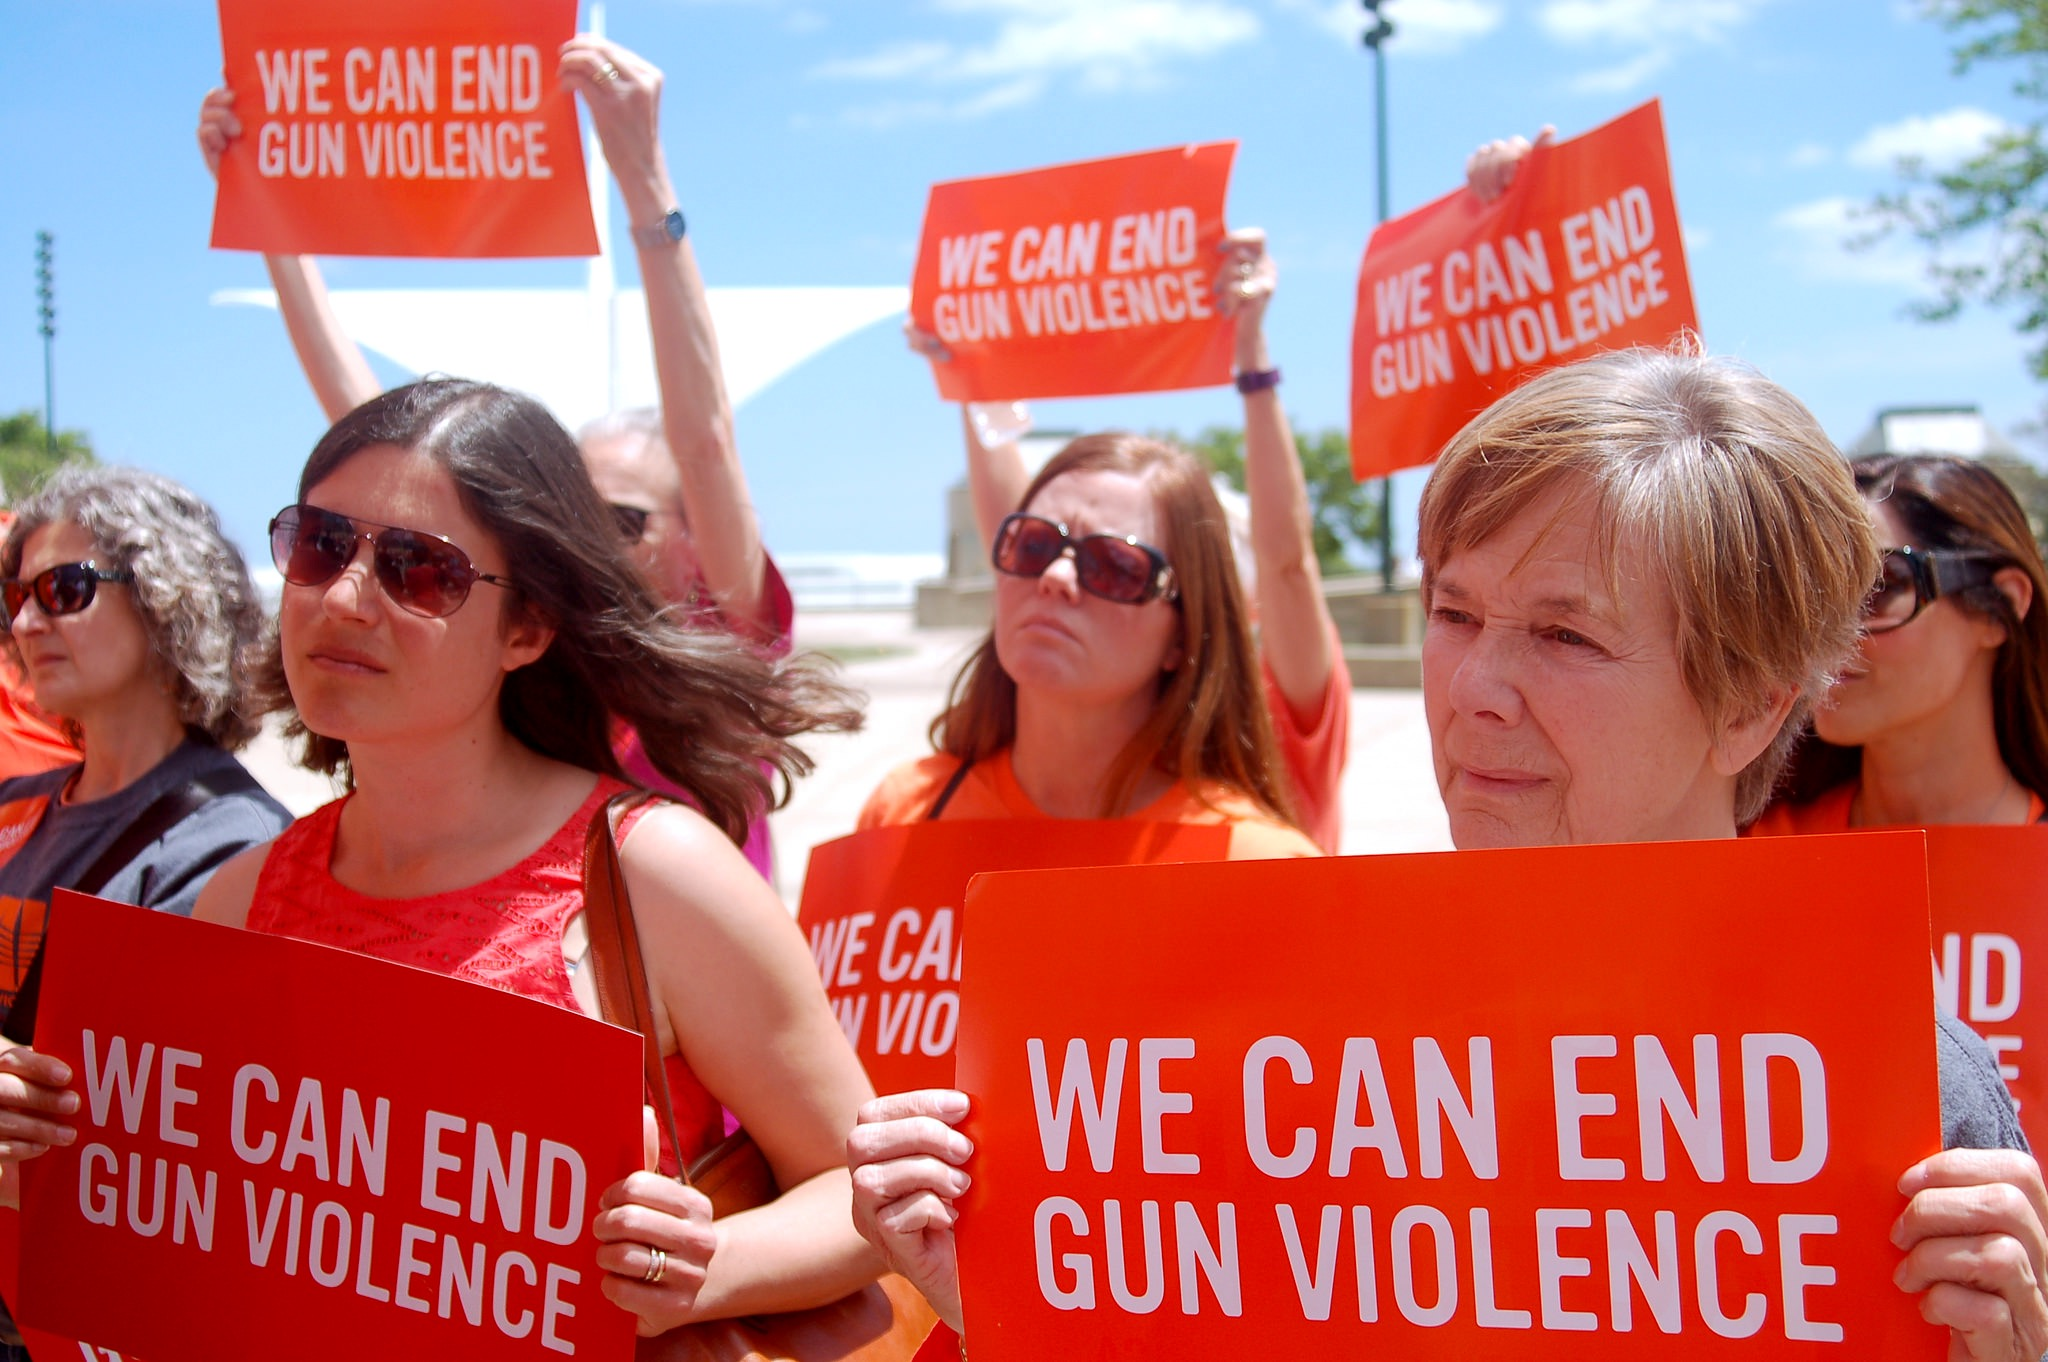 Dozens attend a National Gun Violence Awareness Day event in O'Donnell Park. (Photo by Brendan O'Brien)